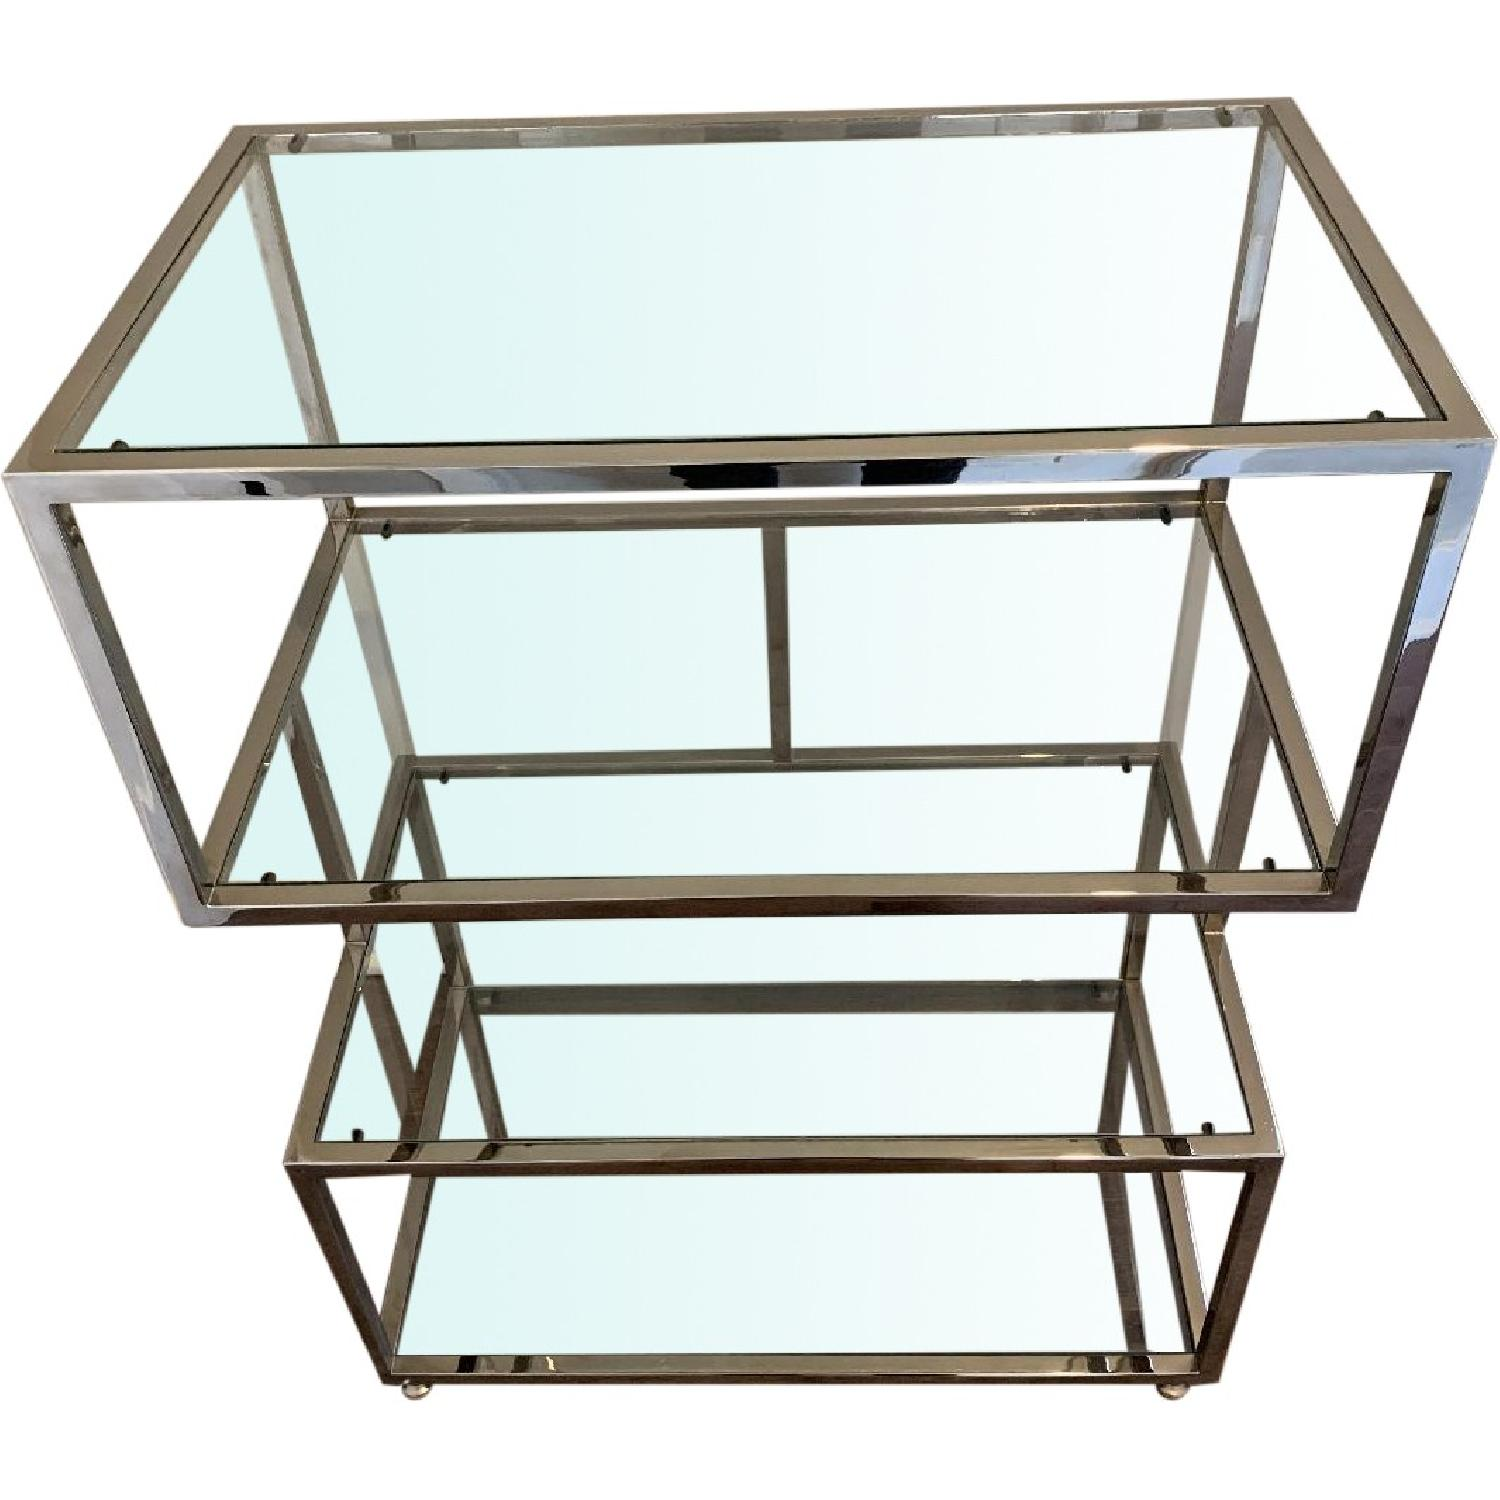 Industrial Metal Chrome Bookcase w/ Glass Shelves - image-0